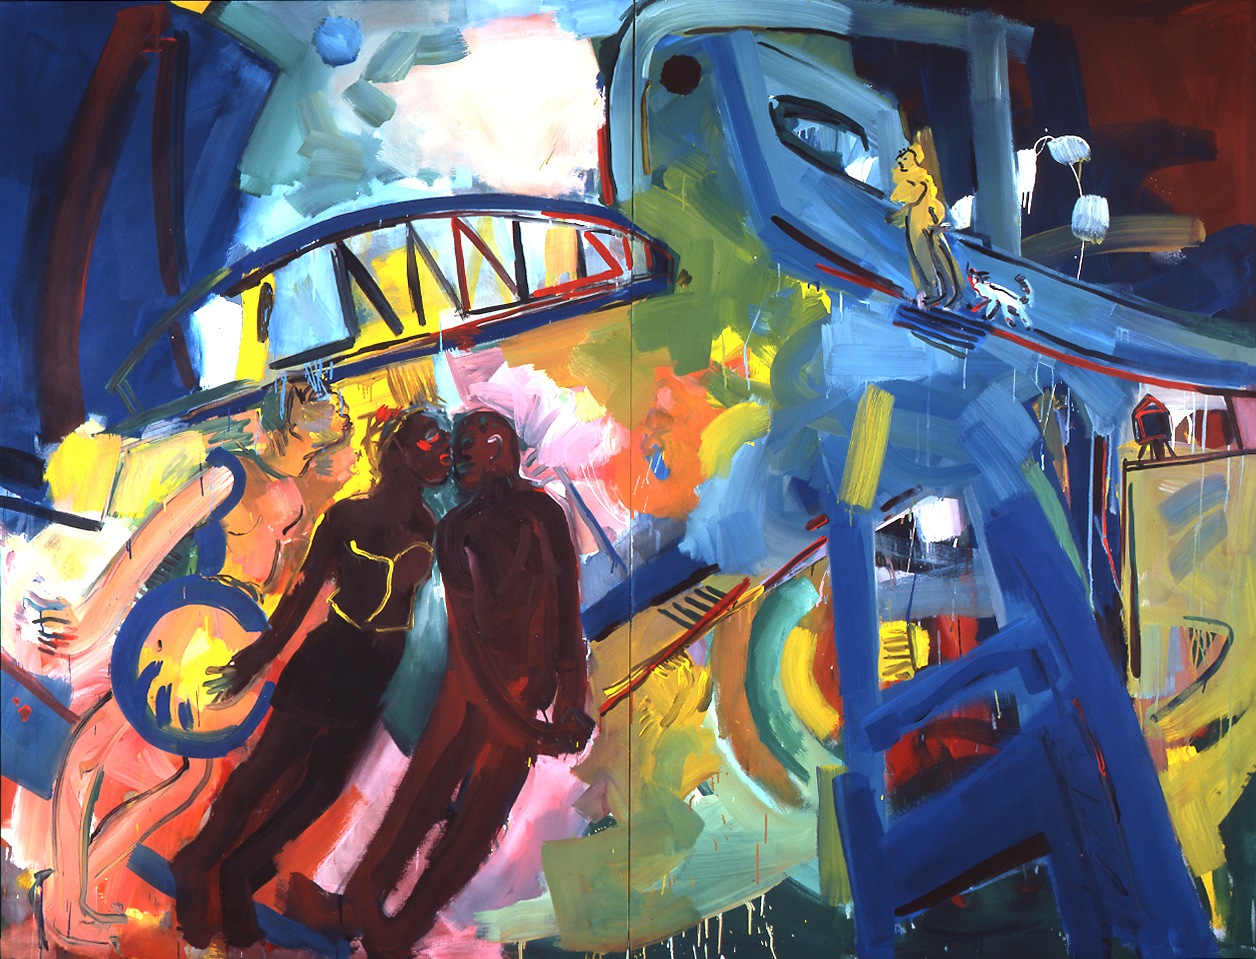 Barbara Quandt | Under the bridge, 170 x 224 cm, 1987